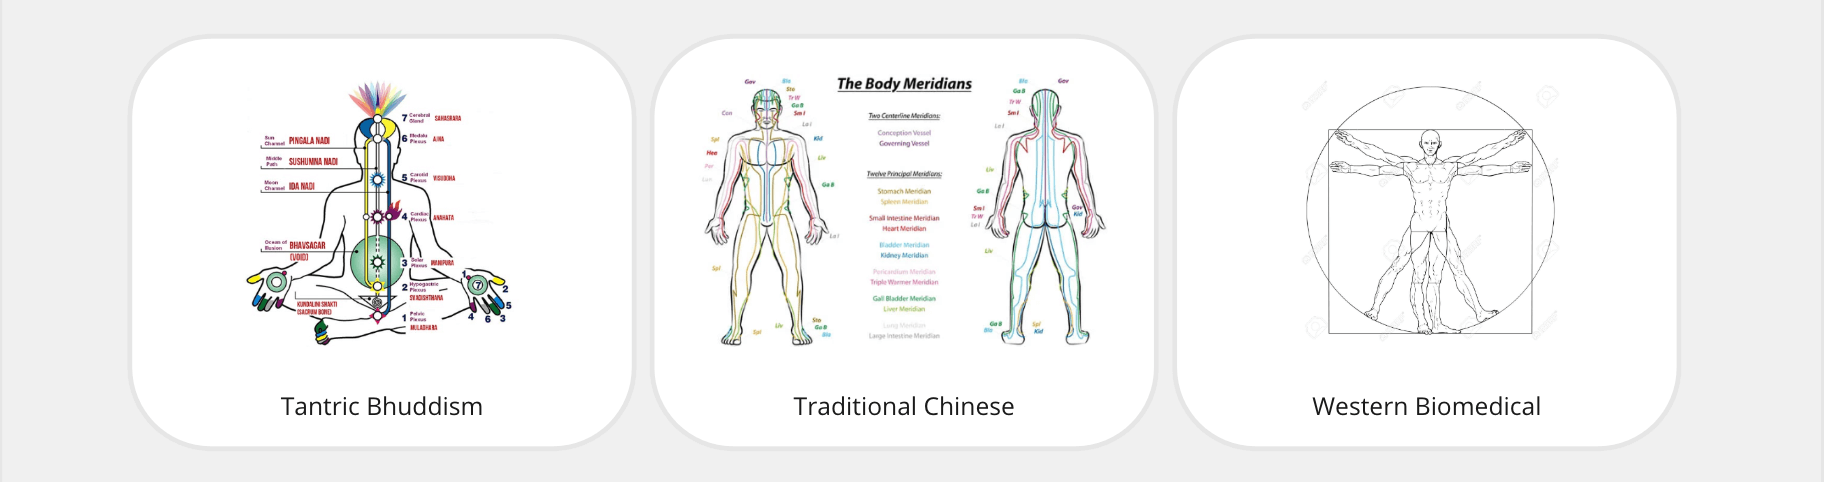 Wellness Health Diversity Patch supports chinese, western and buddhist health practices.